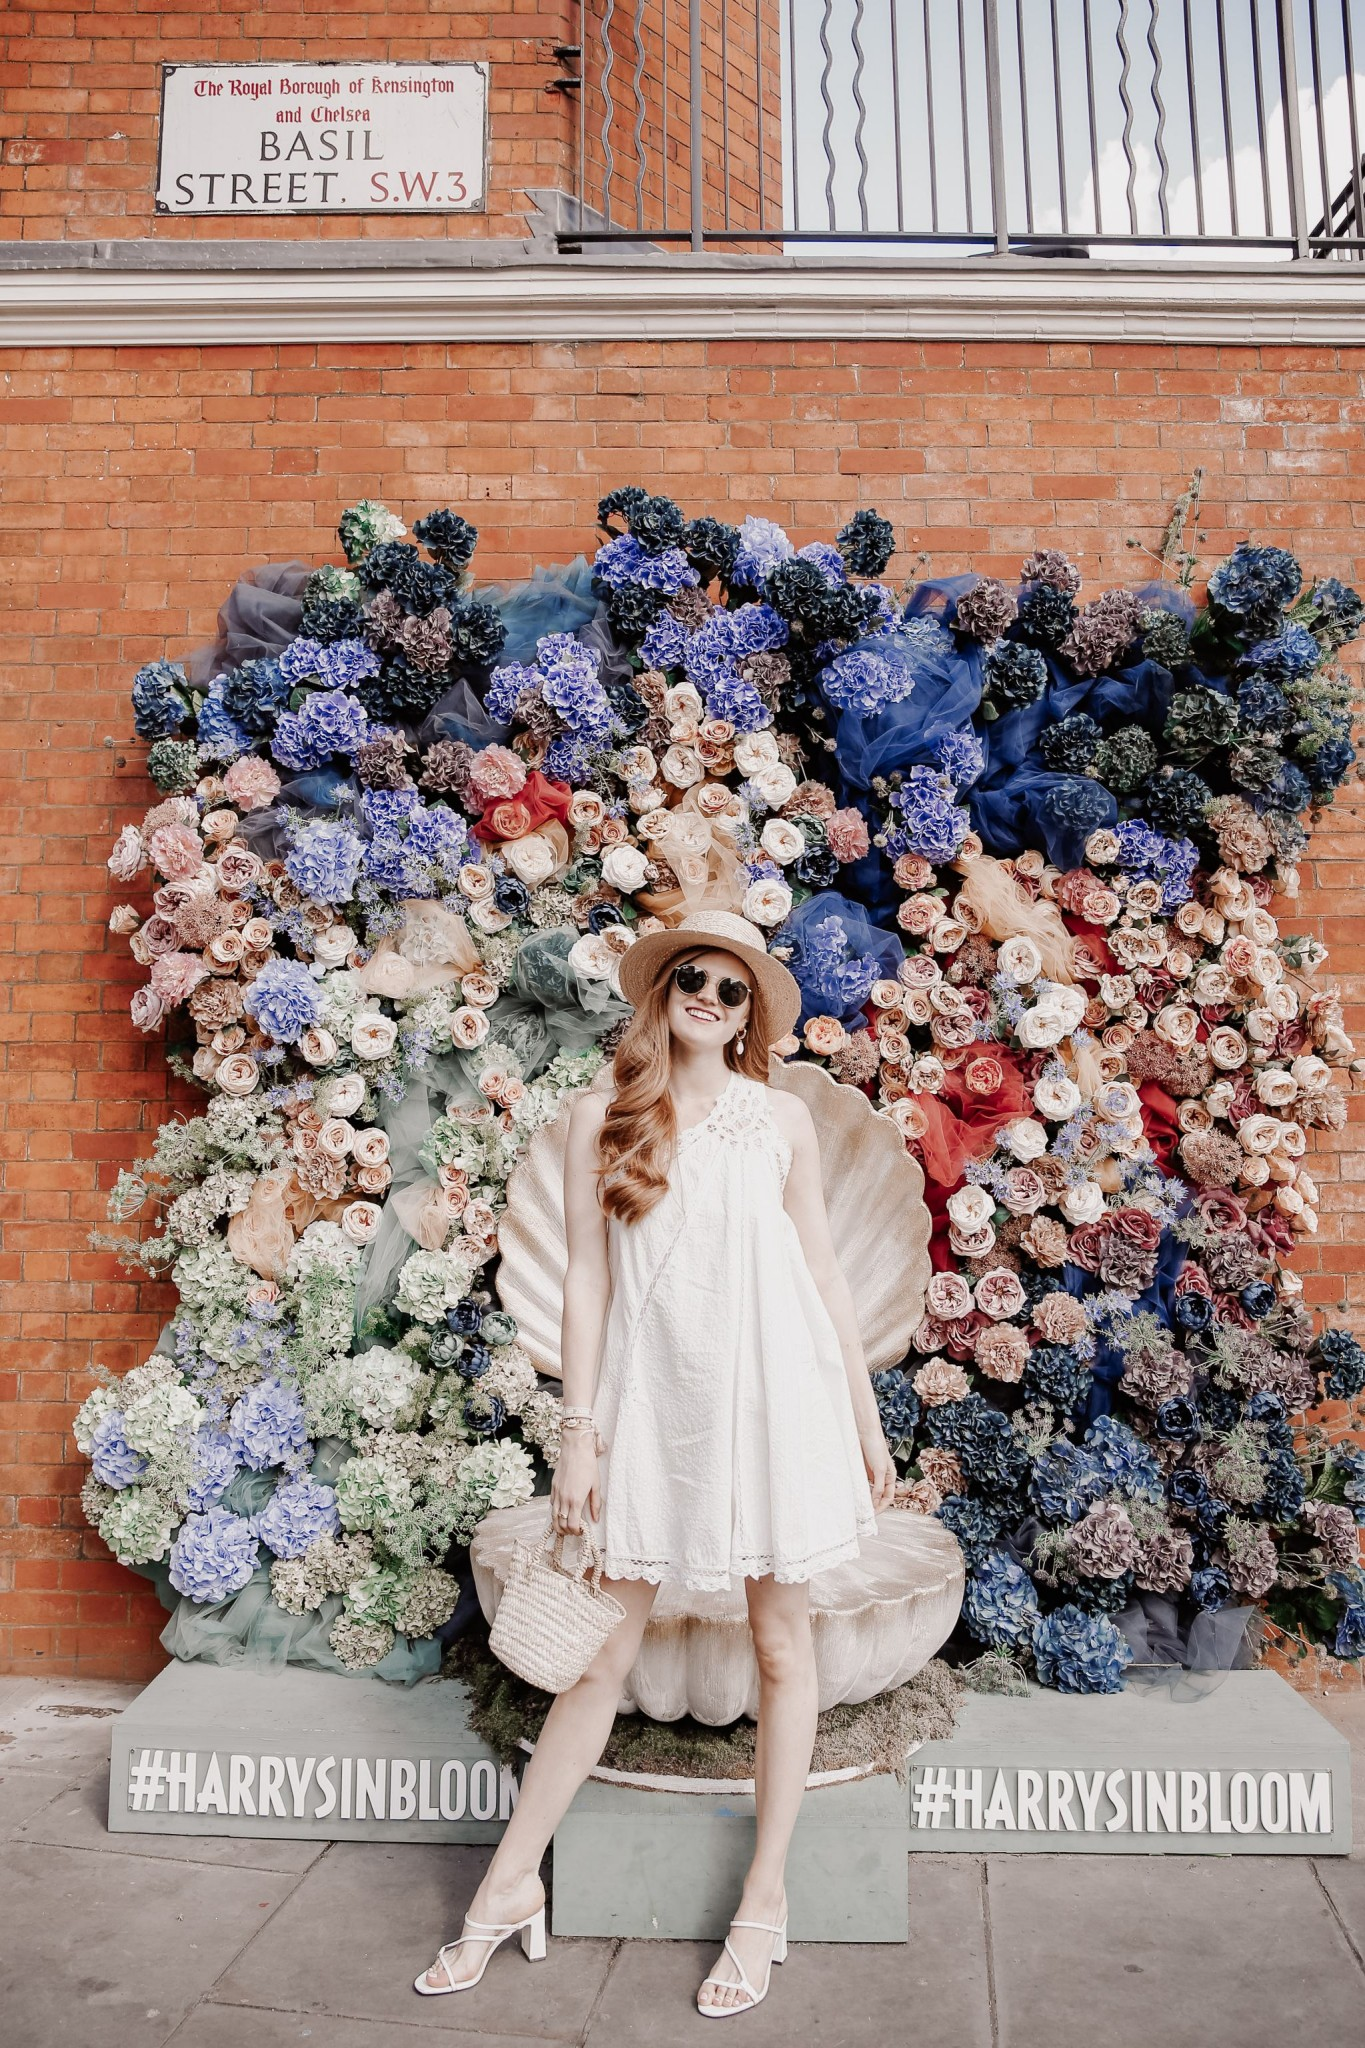 Lifestyle blogger Mollie Moores shares her favorite white dresses for summer   LWD: The Free People Little White Dress by popular London fashion blogger, Mollie Moore: image of a woman standing in front of a floral backdrop wearing a Free People Billie Battenburg One-Shoulder Dress.